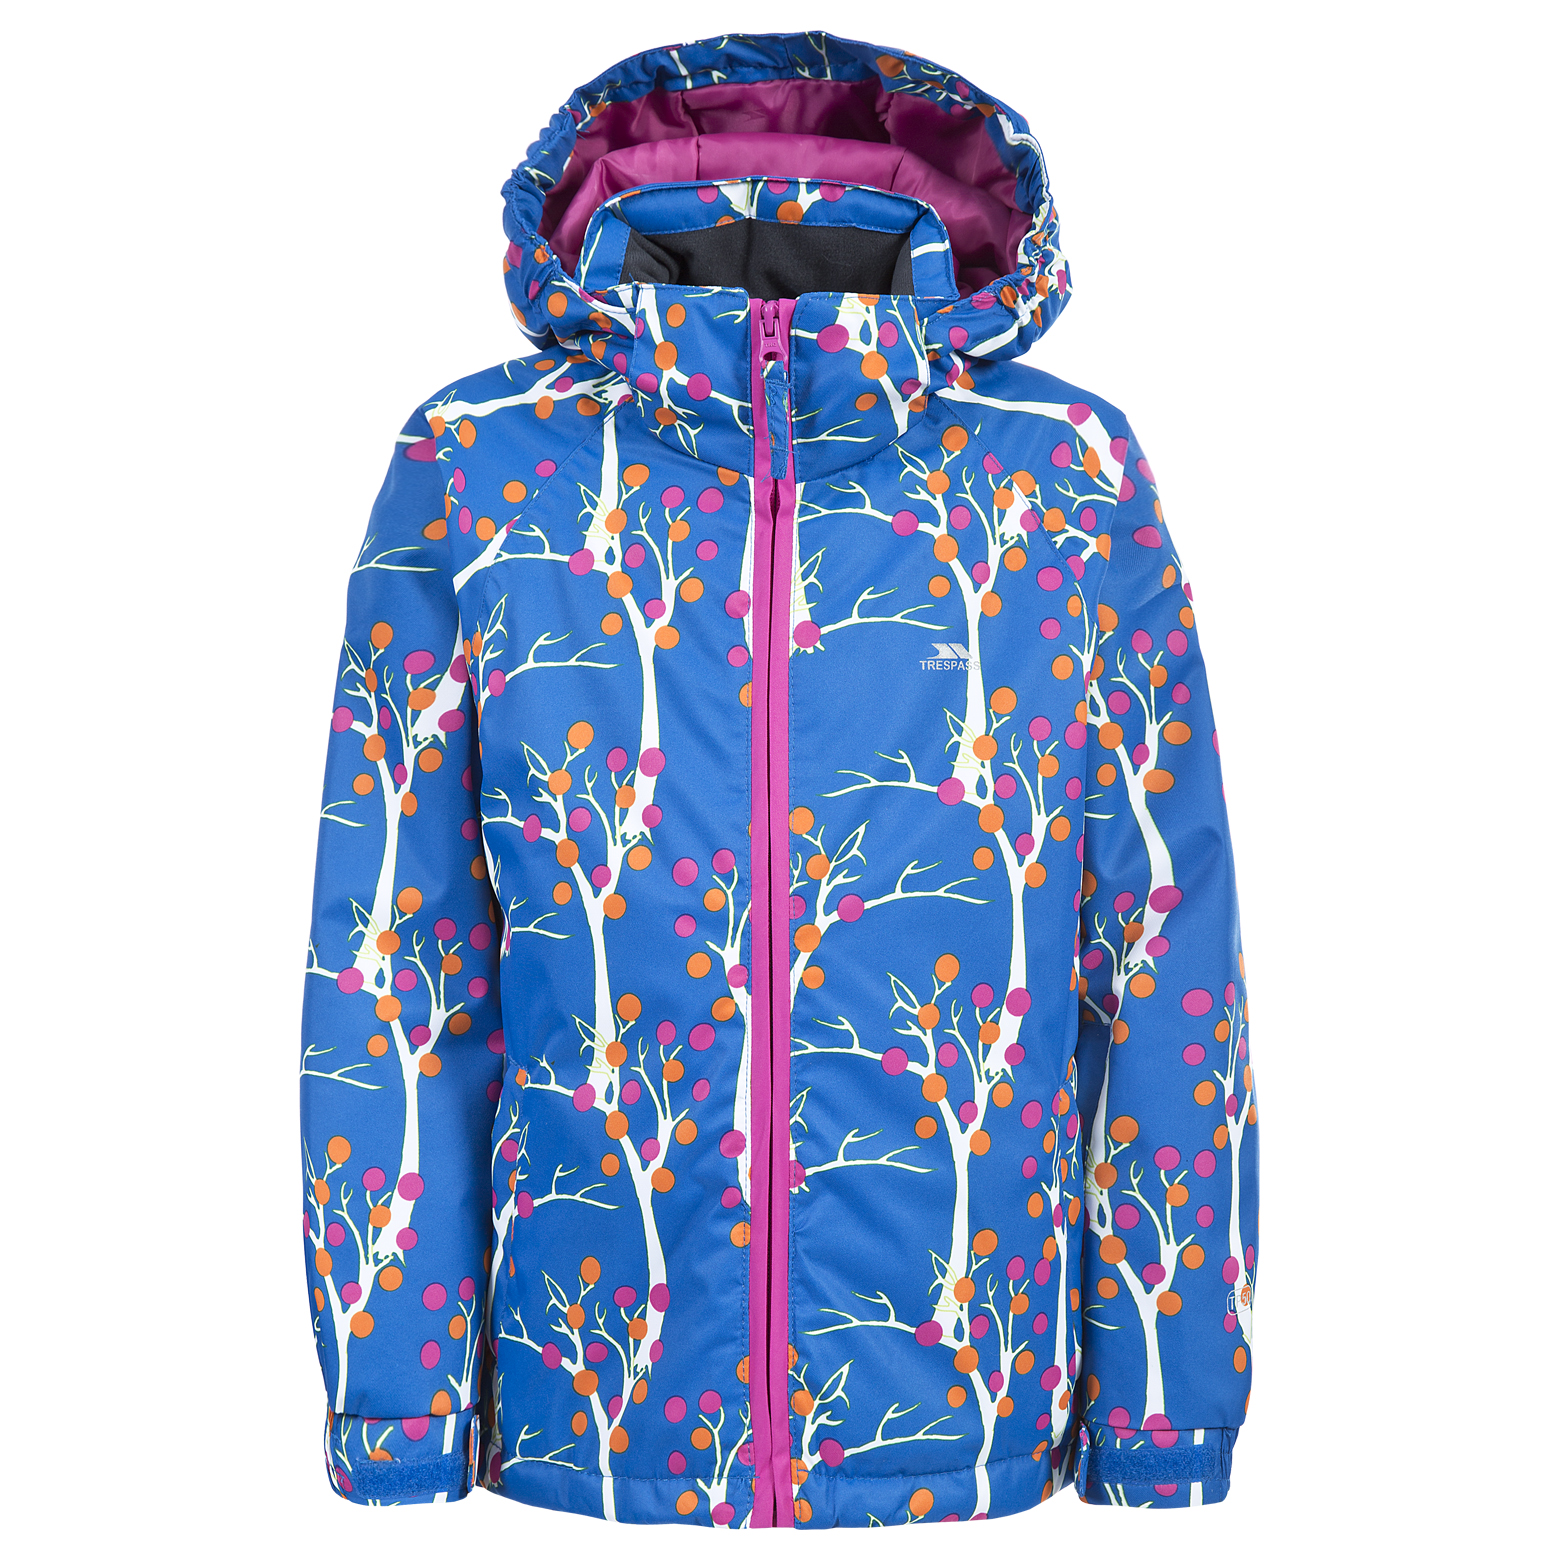 Trespass Bonny Girls Ski Jacket Insulated Waterproof Coat | eBay